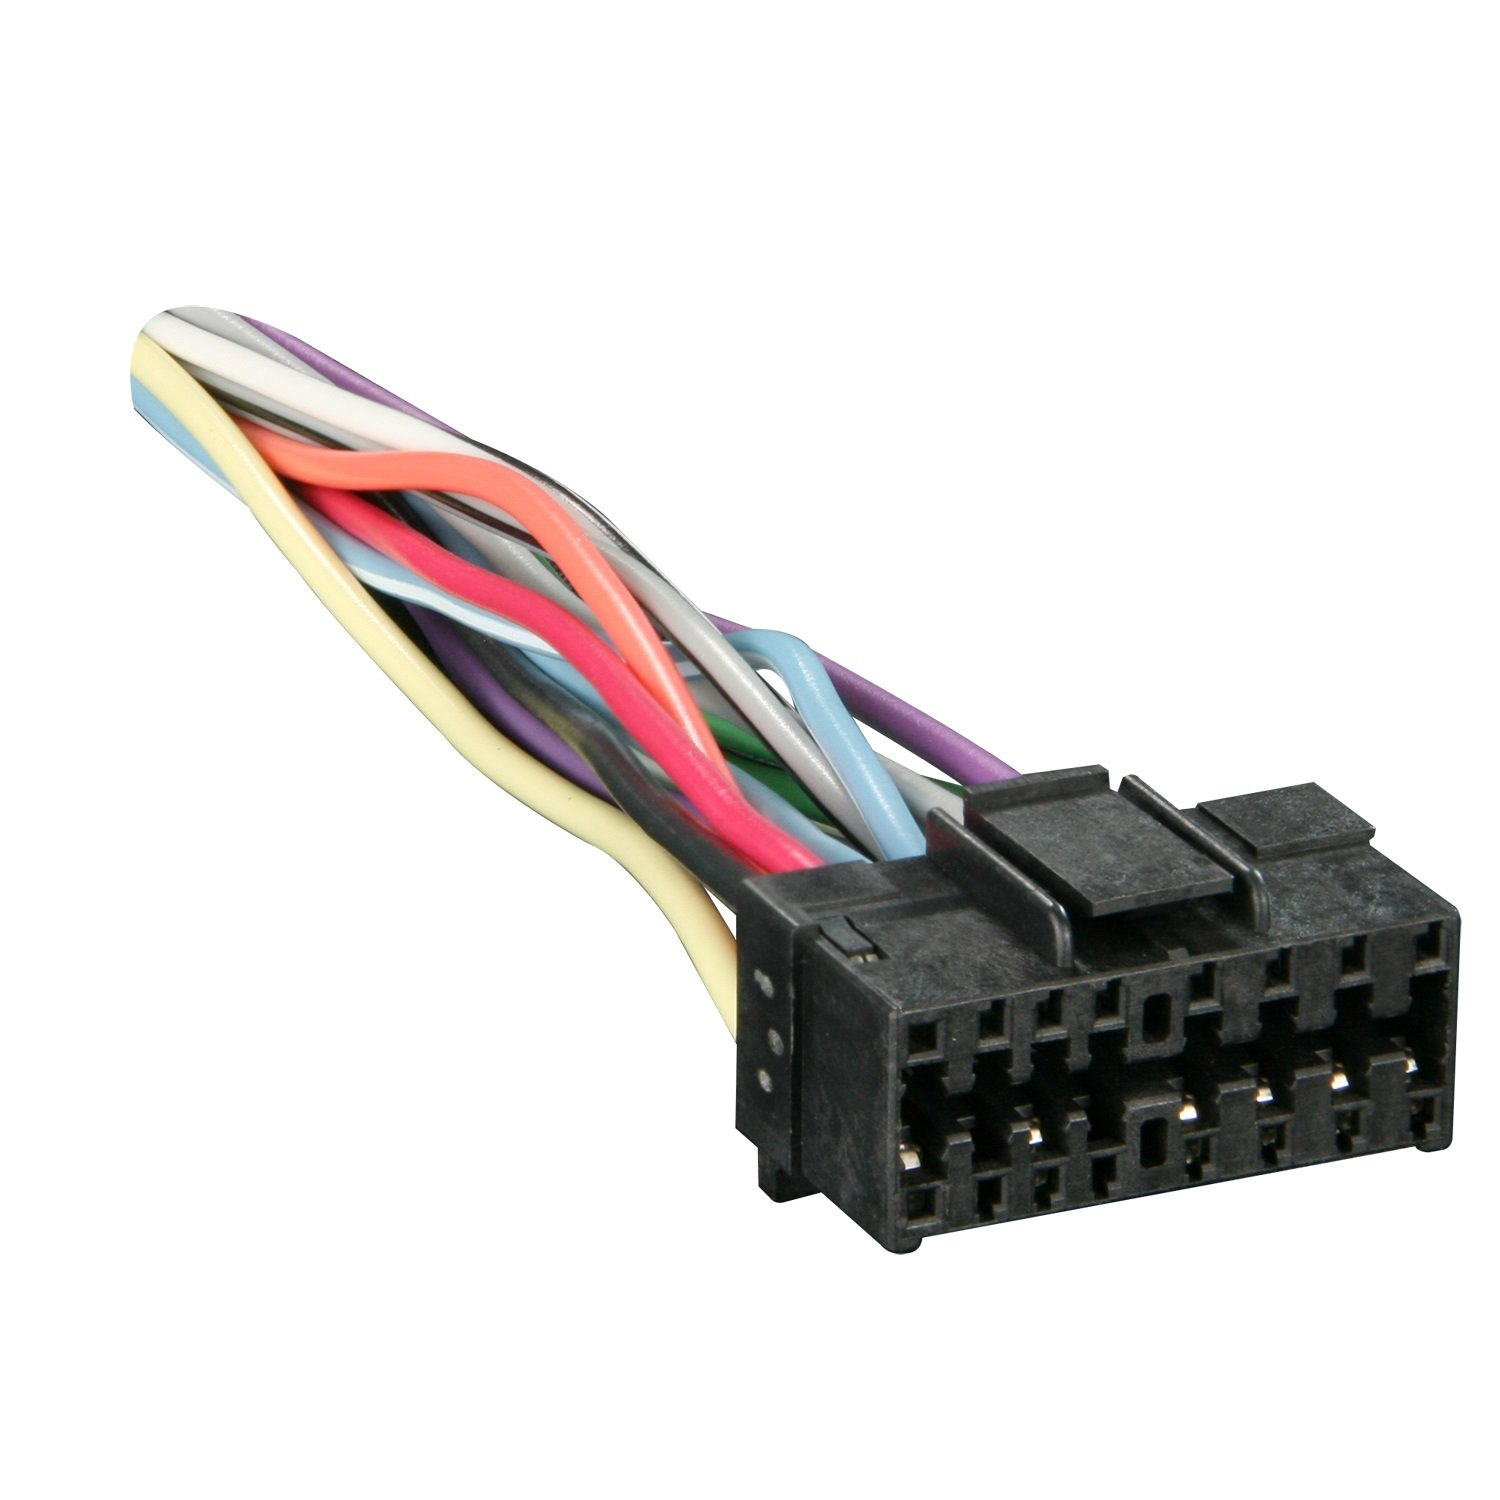 613fEJIm3SL._SL1500_ amazon com metra sy16 0001 16 pin sony power 4 speaker car metra pioneer wiring harness at edmiracle.co